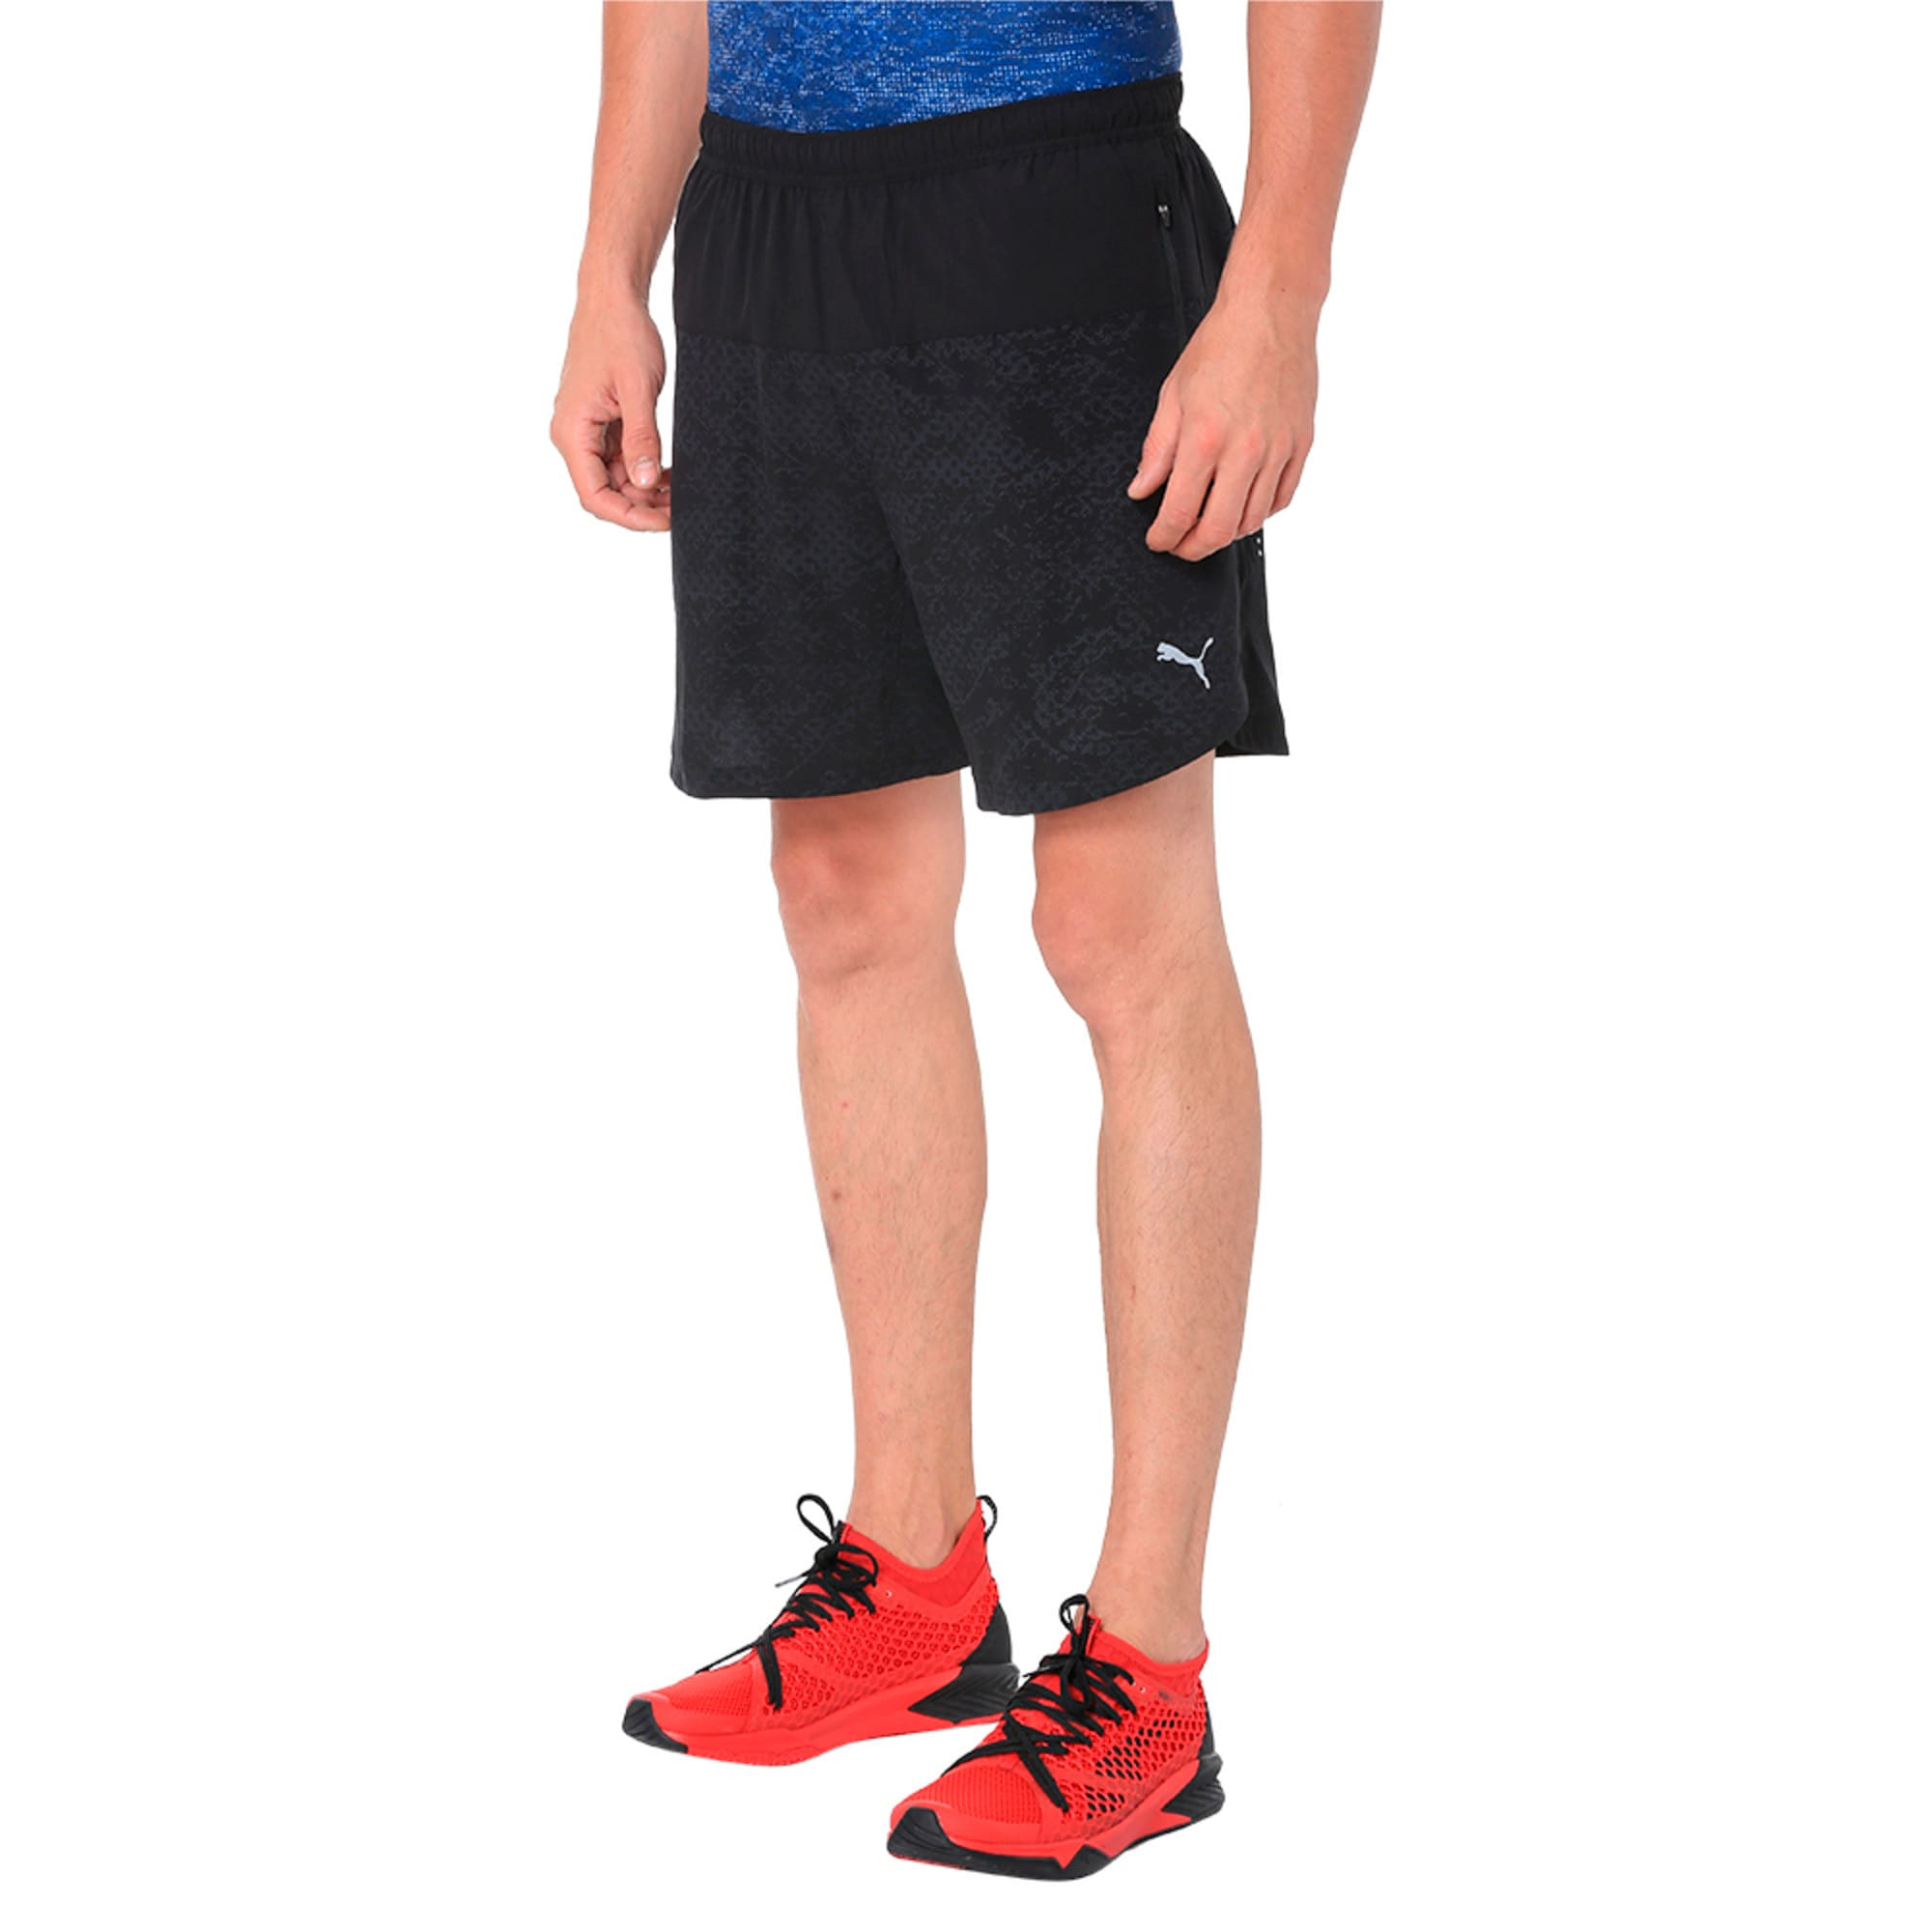 Thumbnail 2 of Pace 7'' Graphic Men's Running Shorts, Puma Black, medium-IND